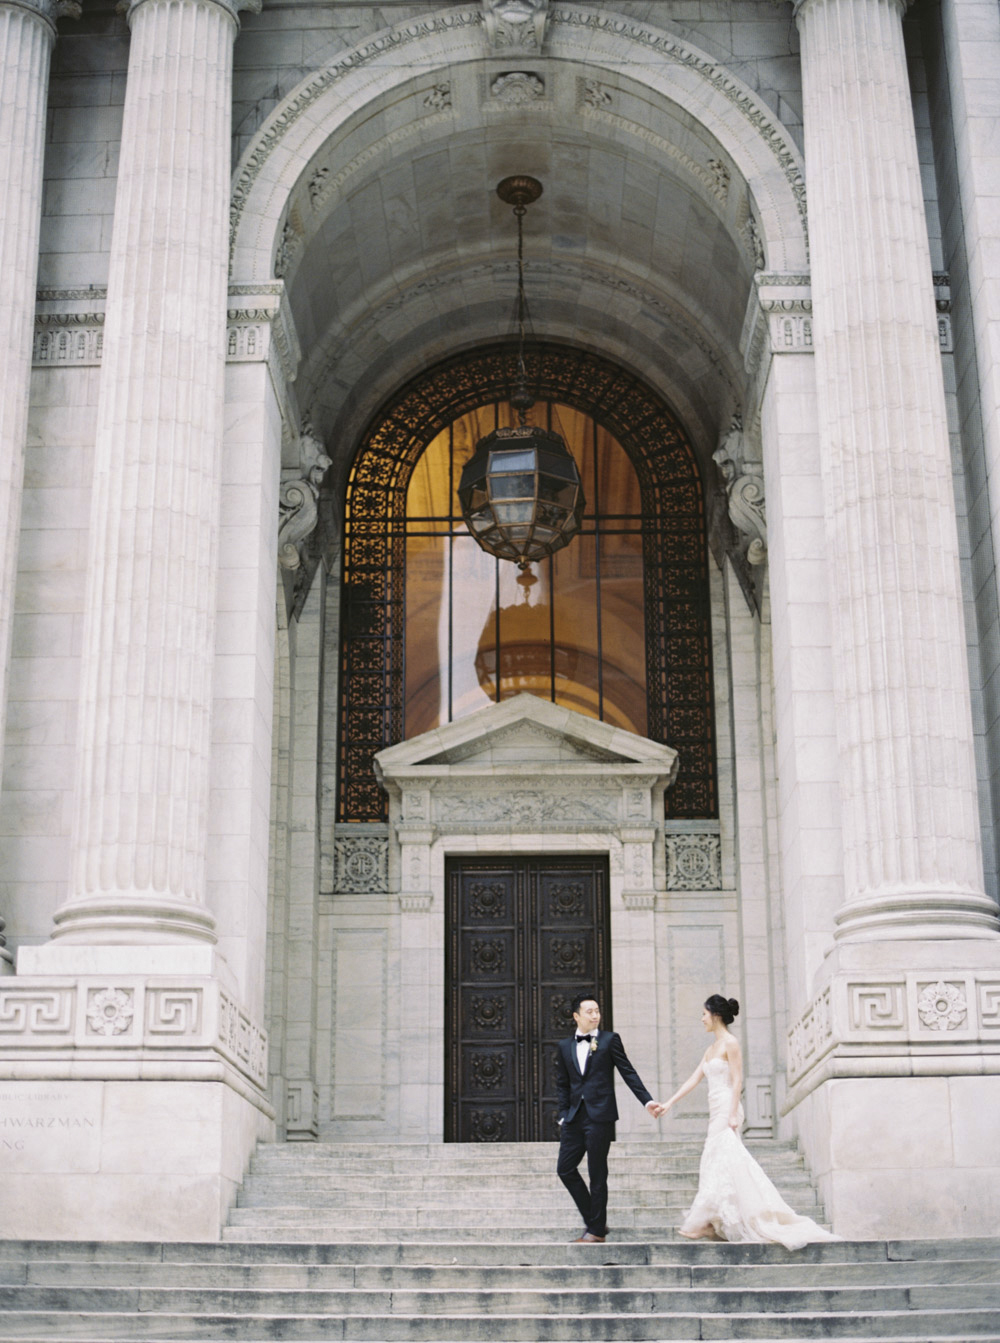 Joe+Lengson+Film+Wedding+Photography+NYC--31.jpg